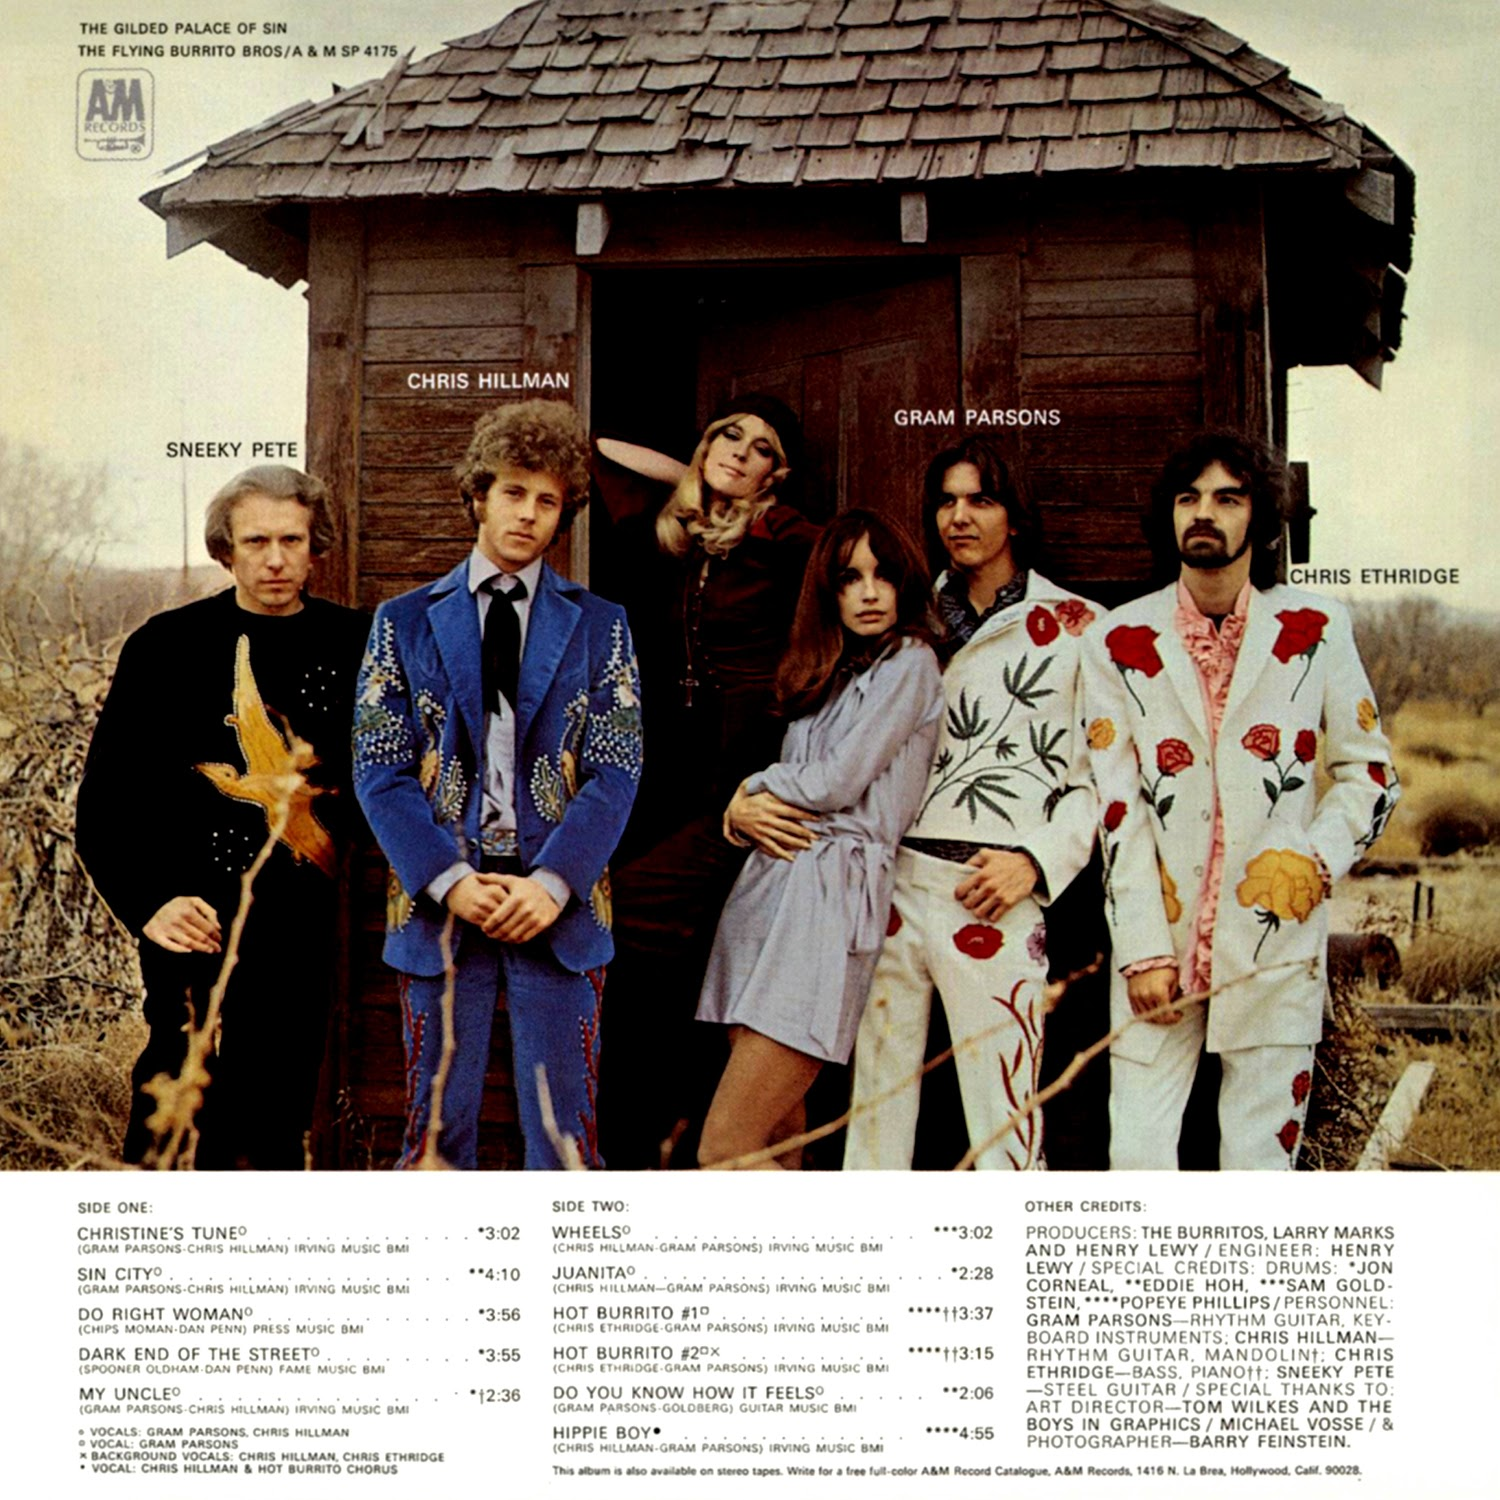 The Flying Burrito Bros